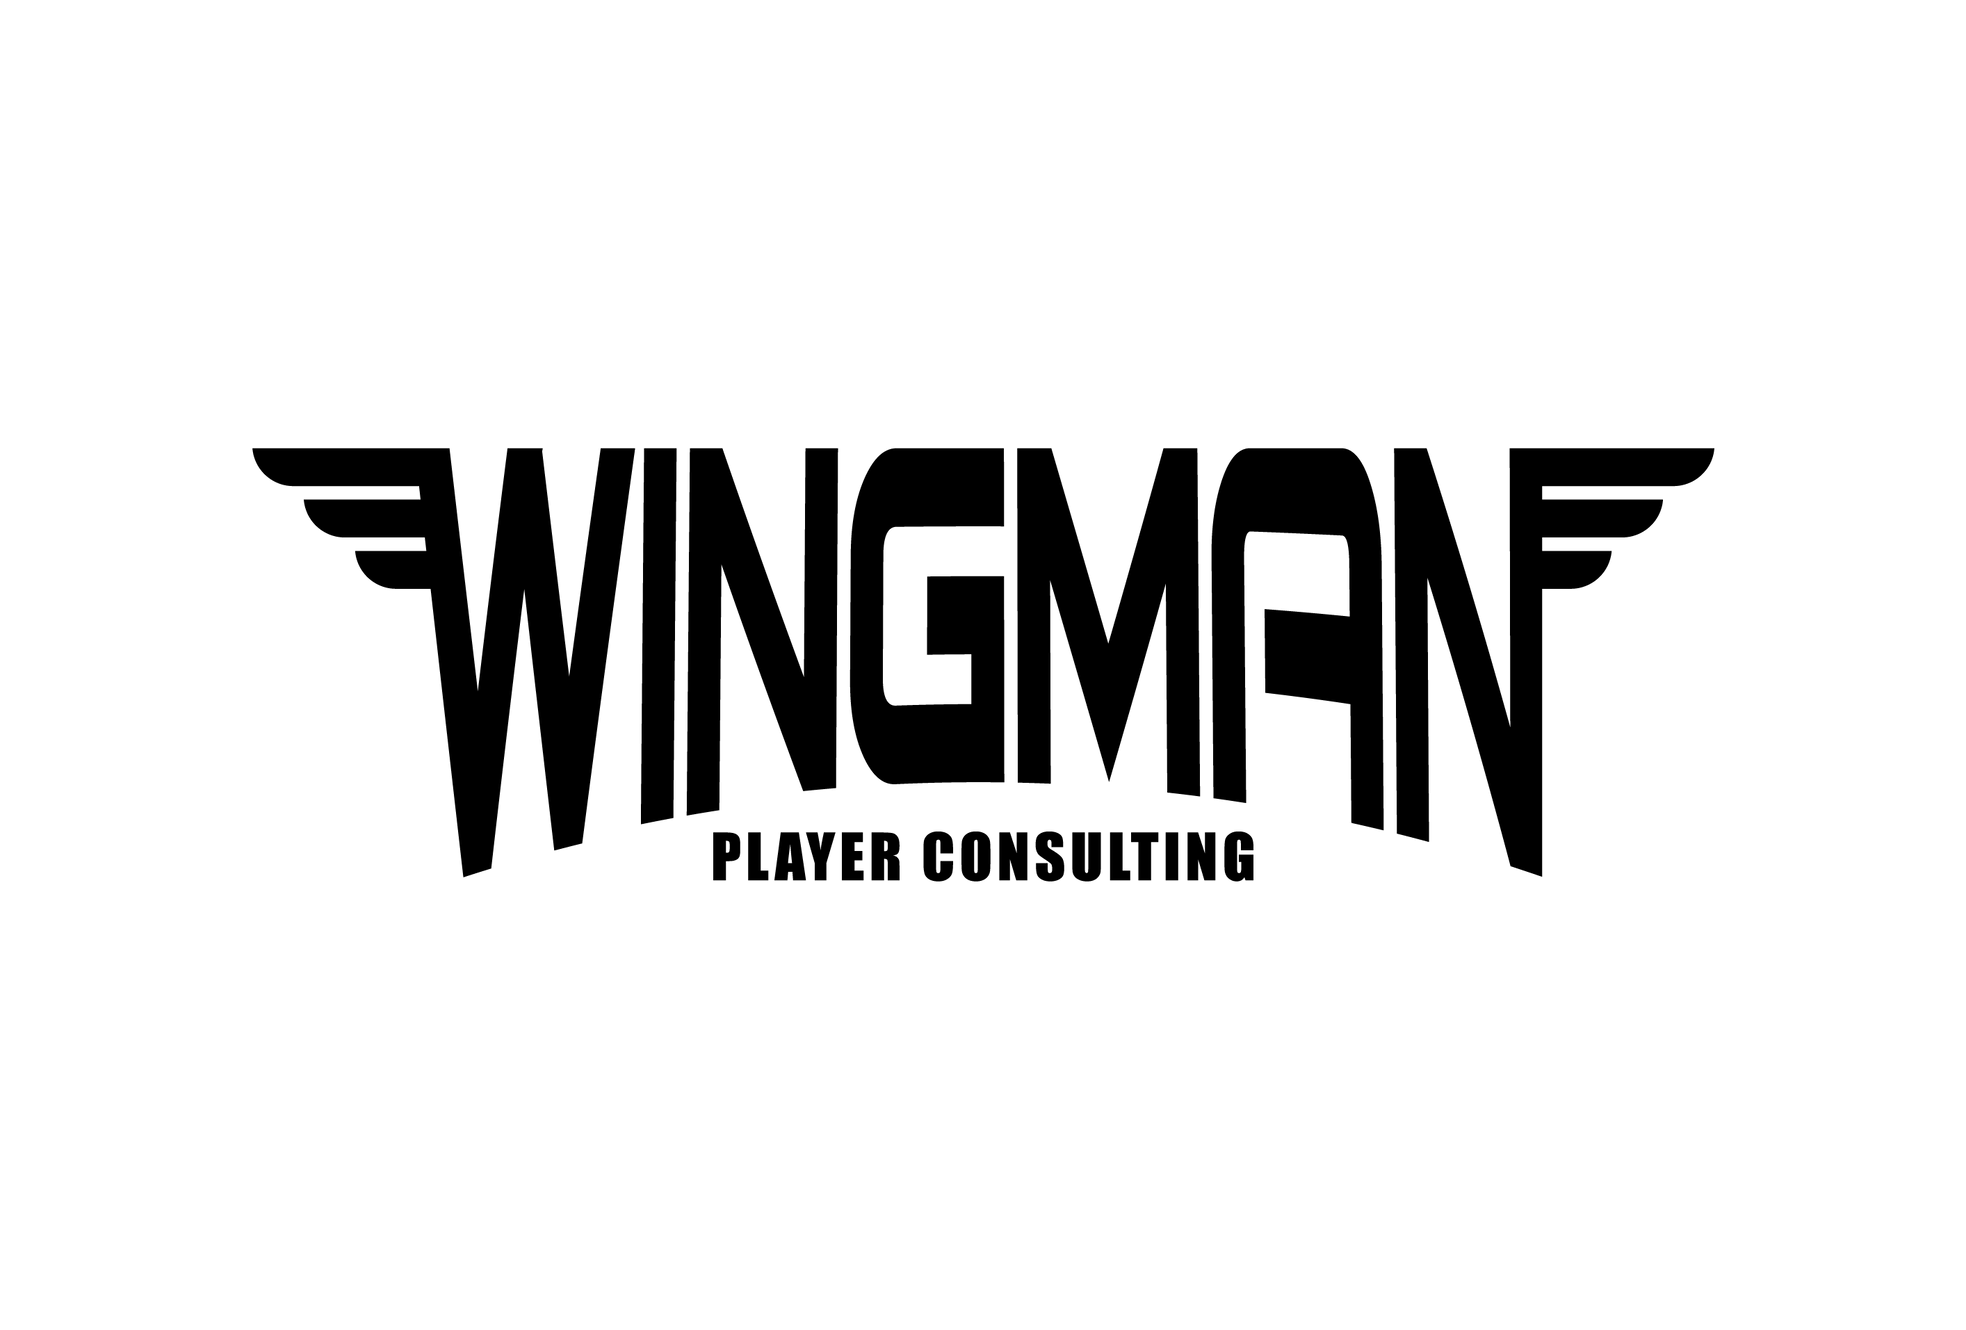 Wpc Consulting Wingman Player Consulting Hockey Agency Winnipeg Canada About